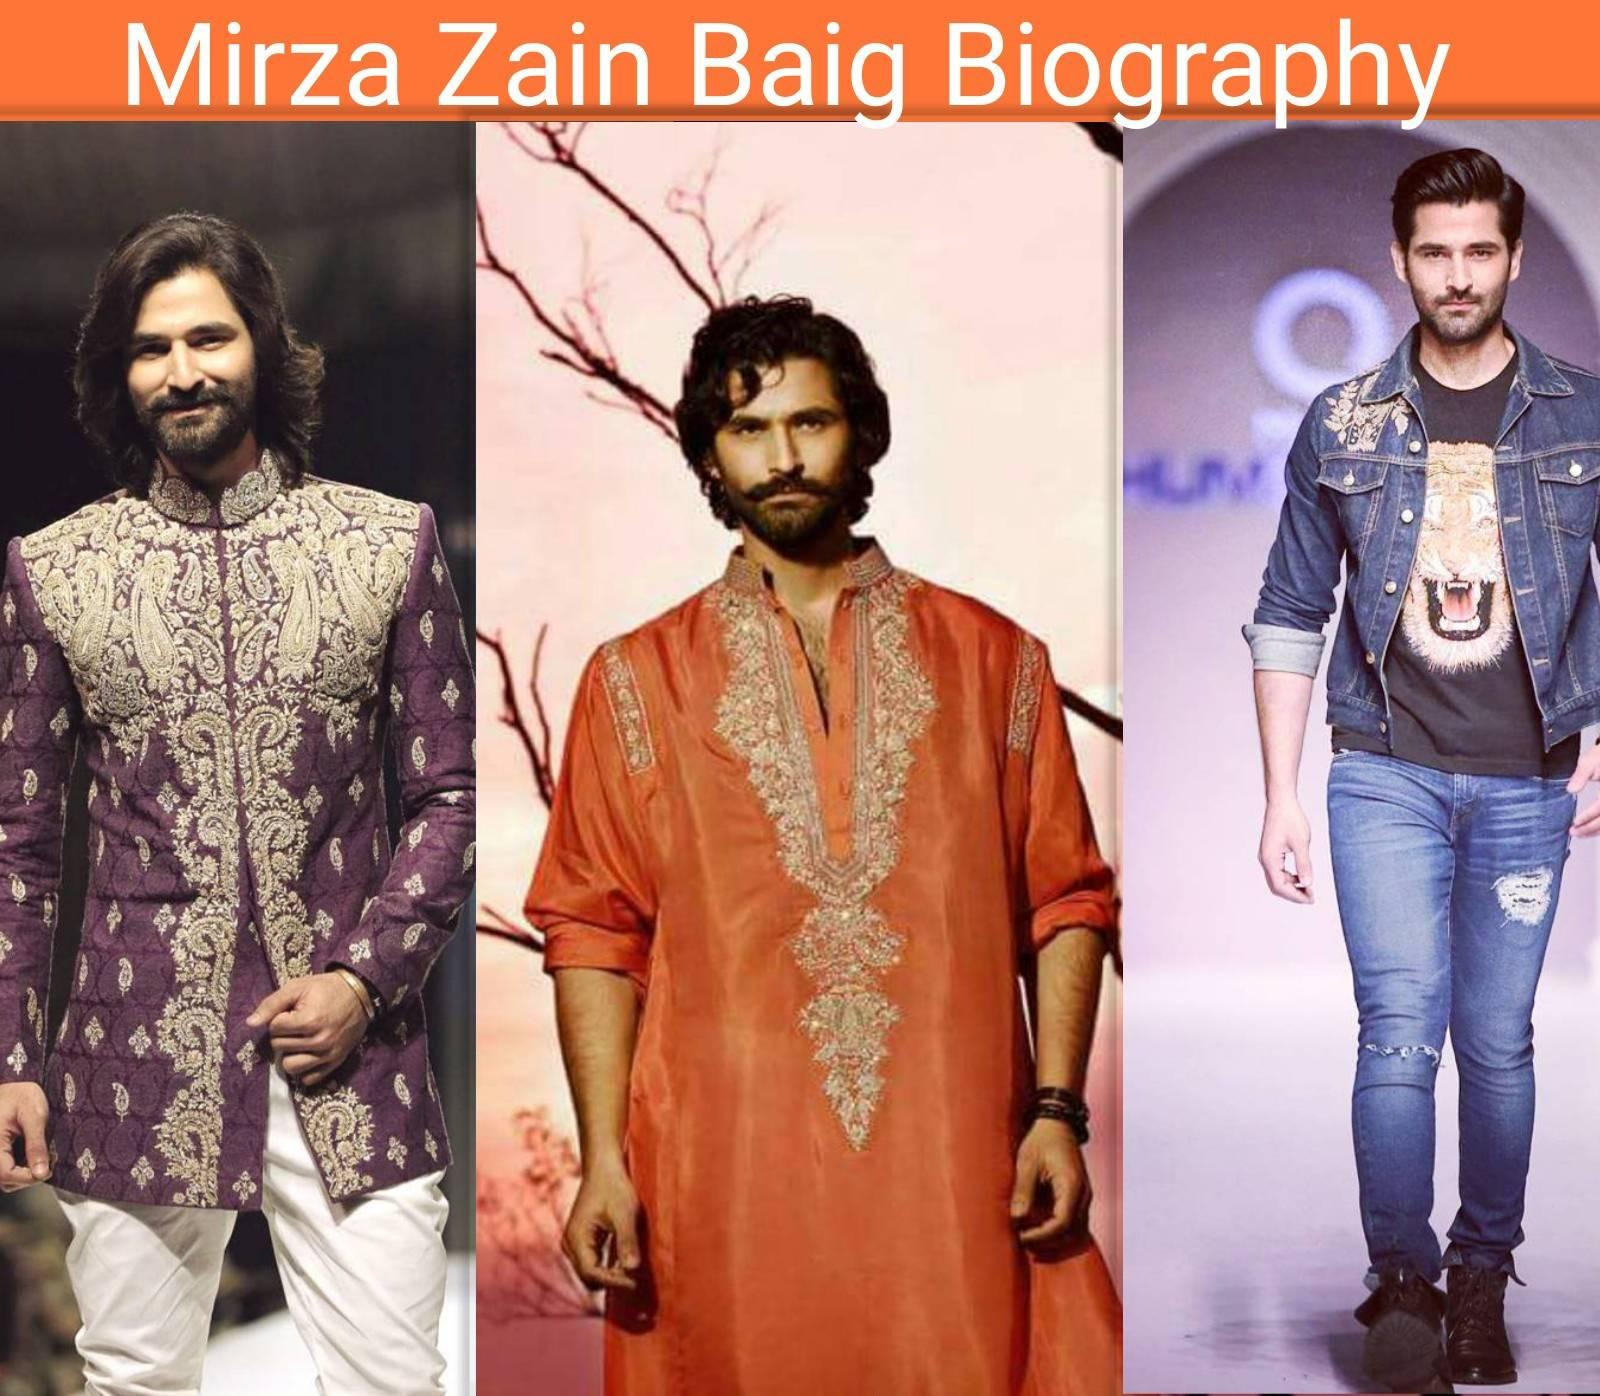 Mirza-Zain-Baig-Biography